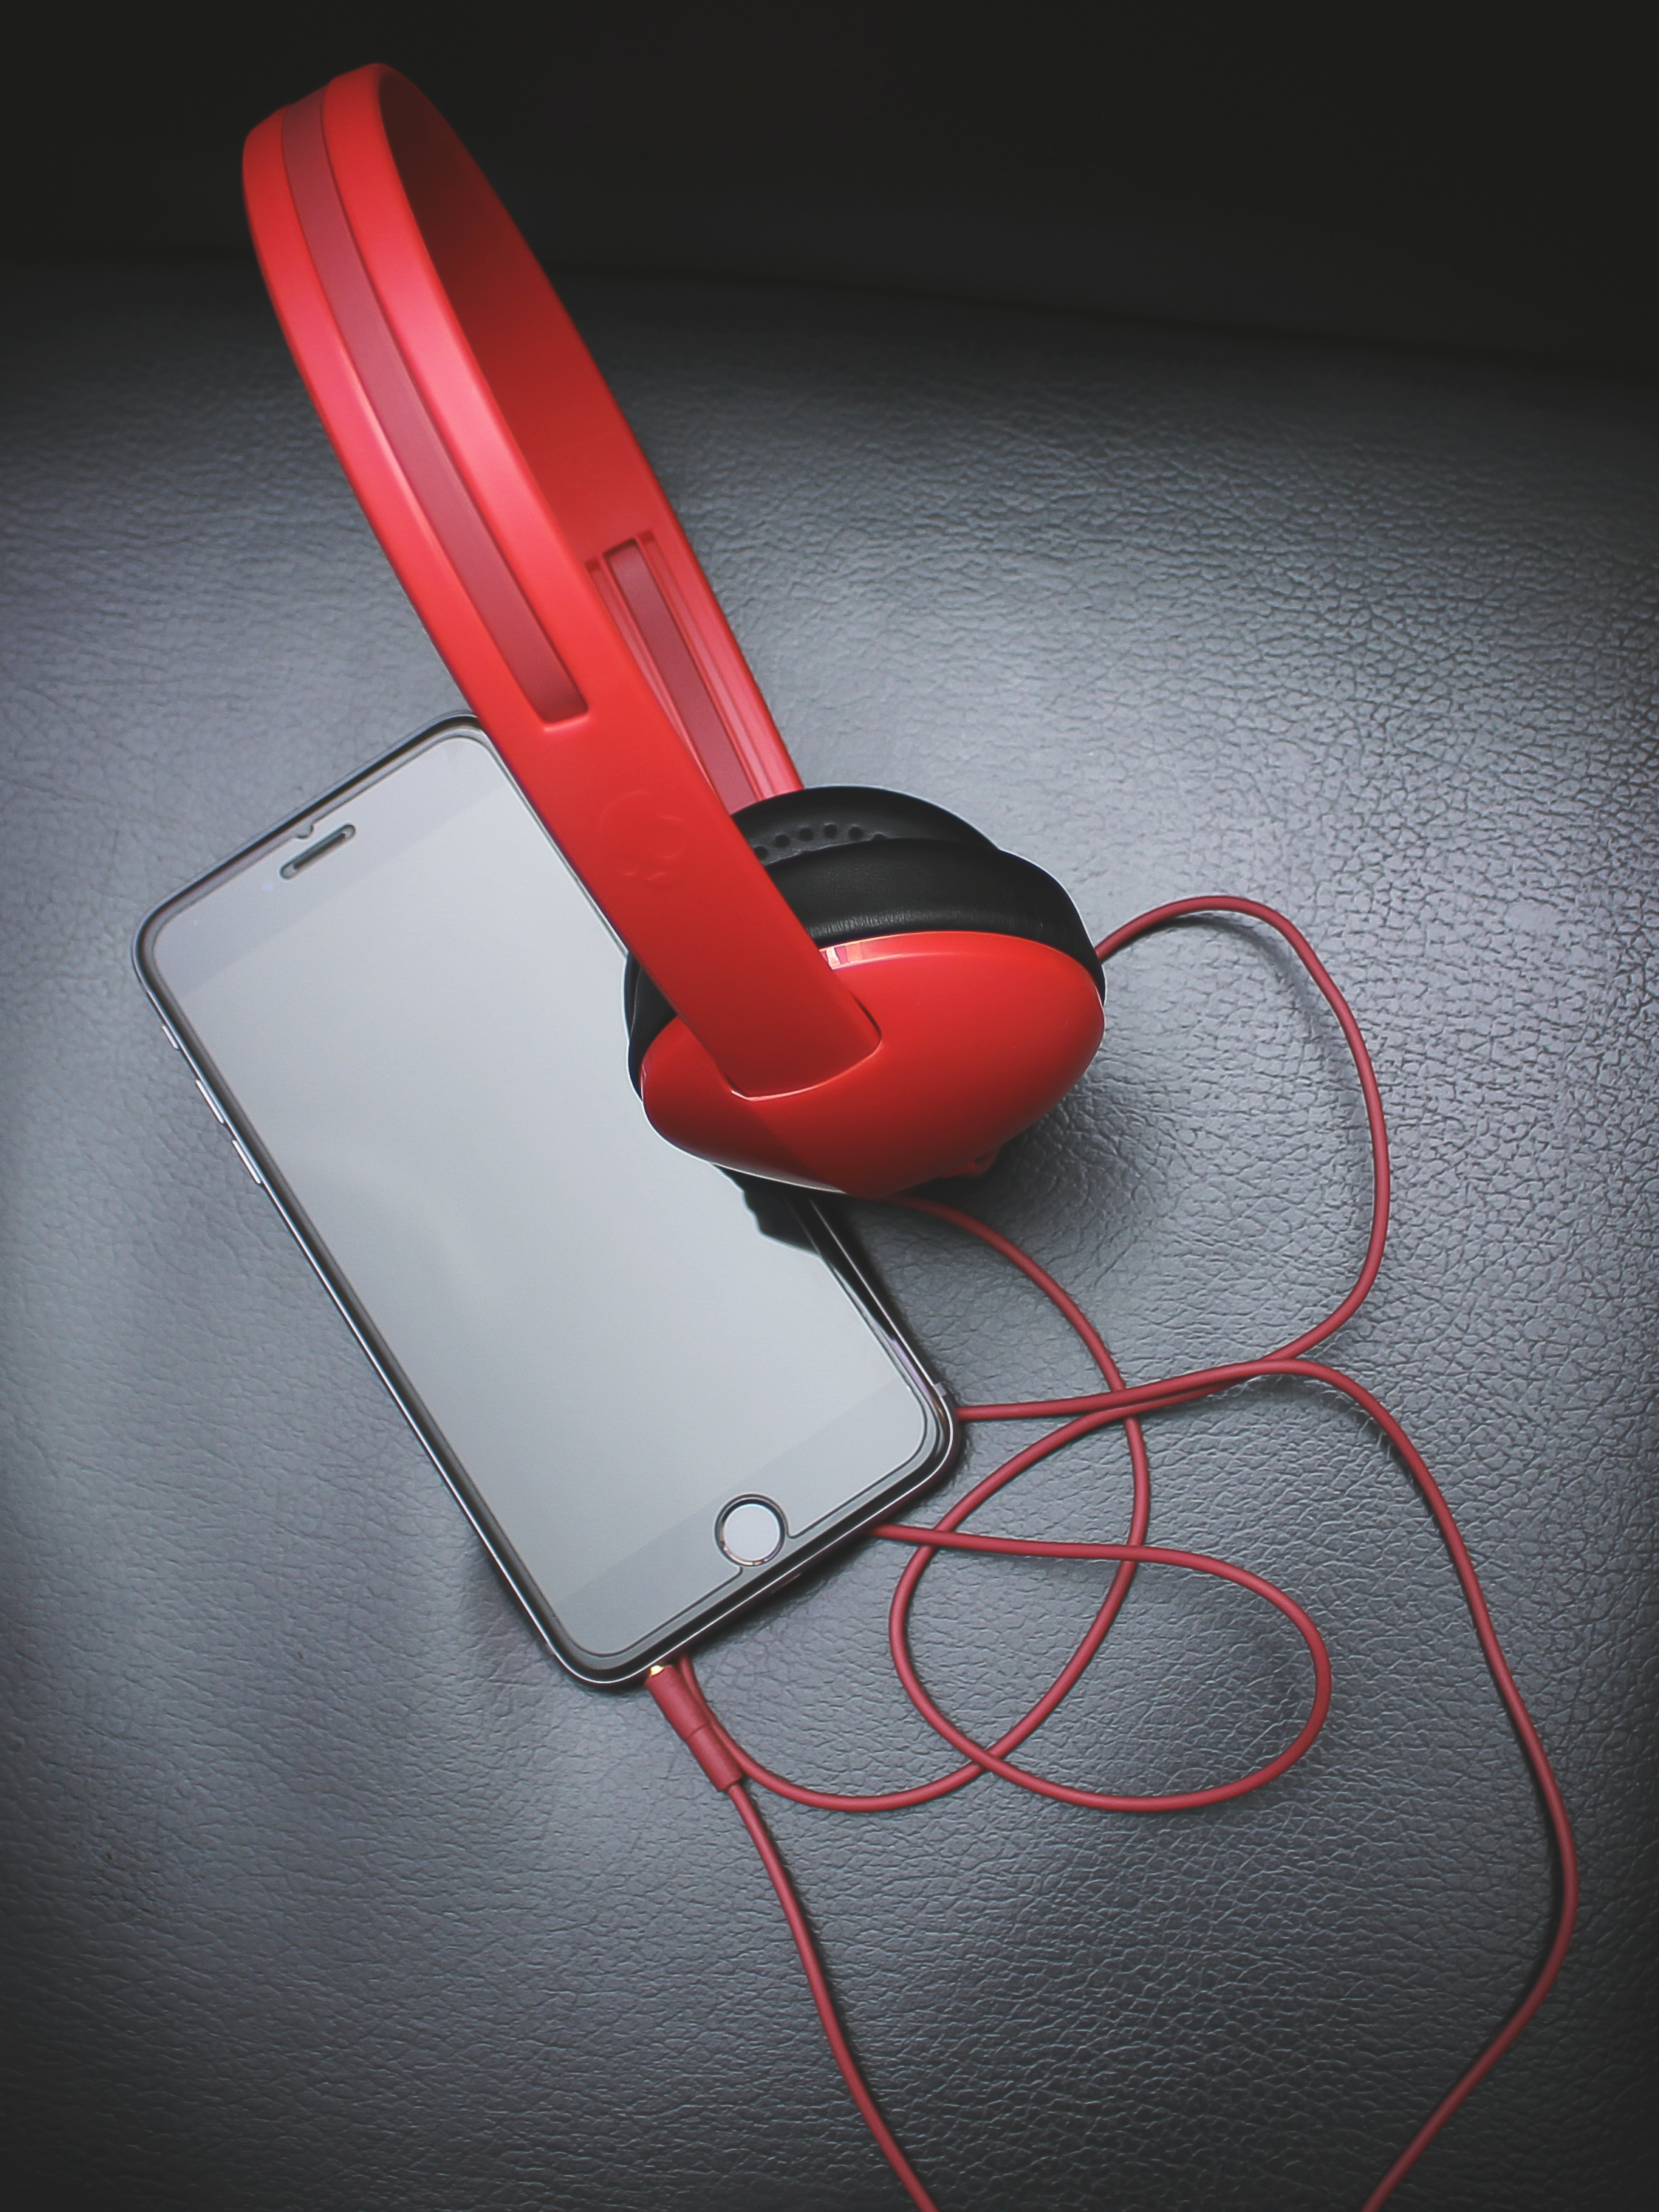 iPhone with red headphones plugged in  for blog submission request at official cam takeova dot com